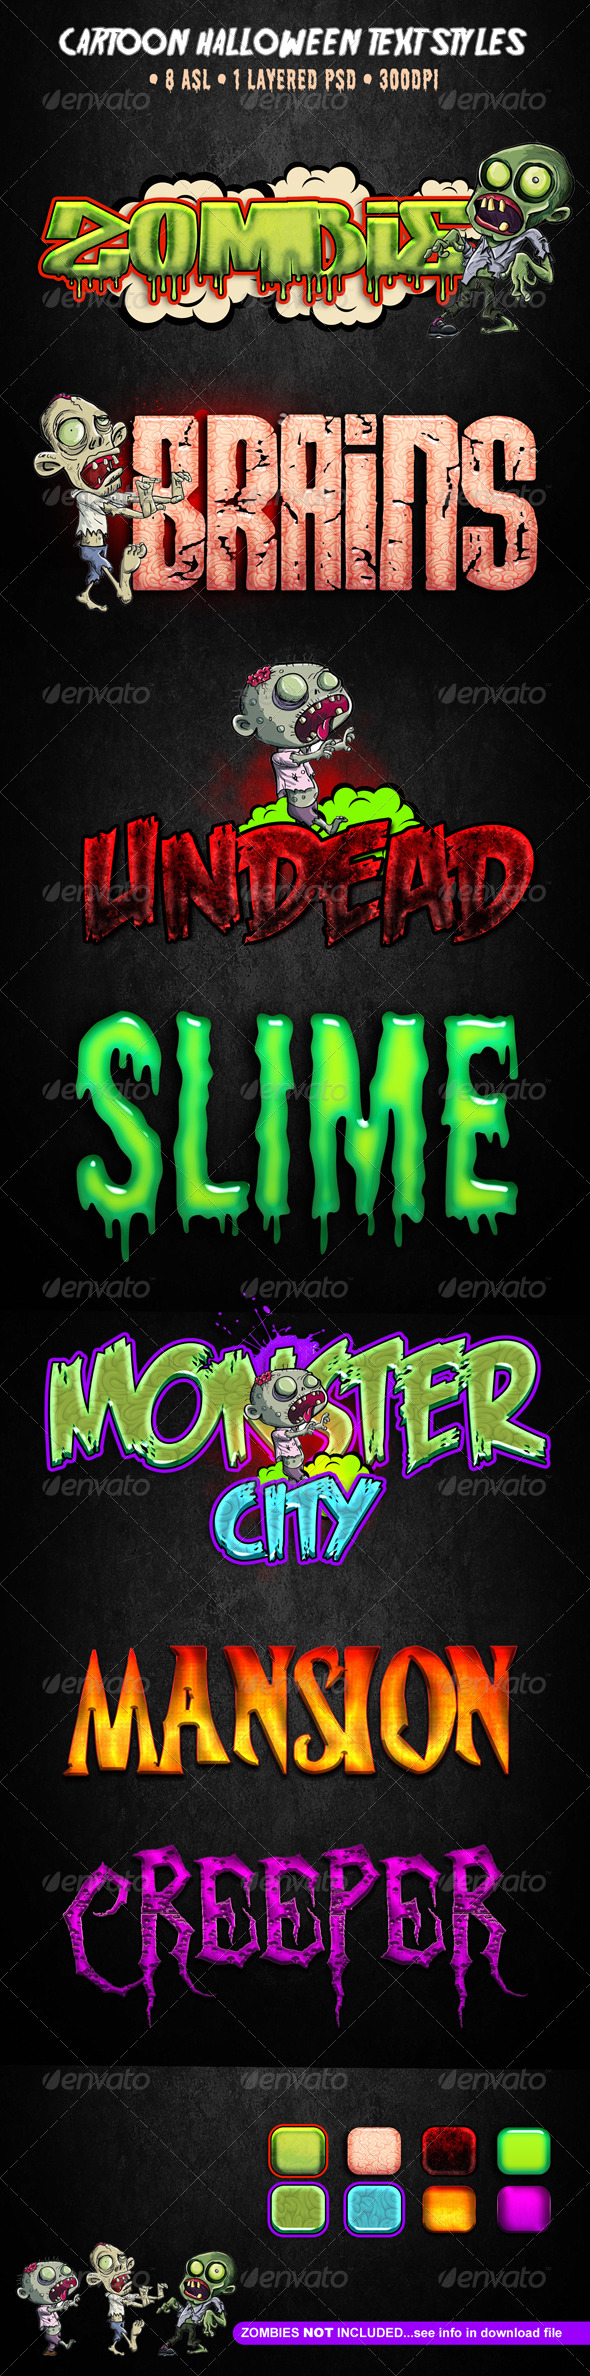 Cartoon Halloween Text Styles - Text Effects Styles